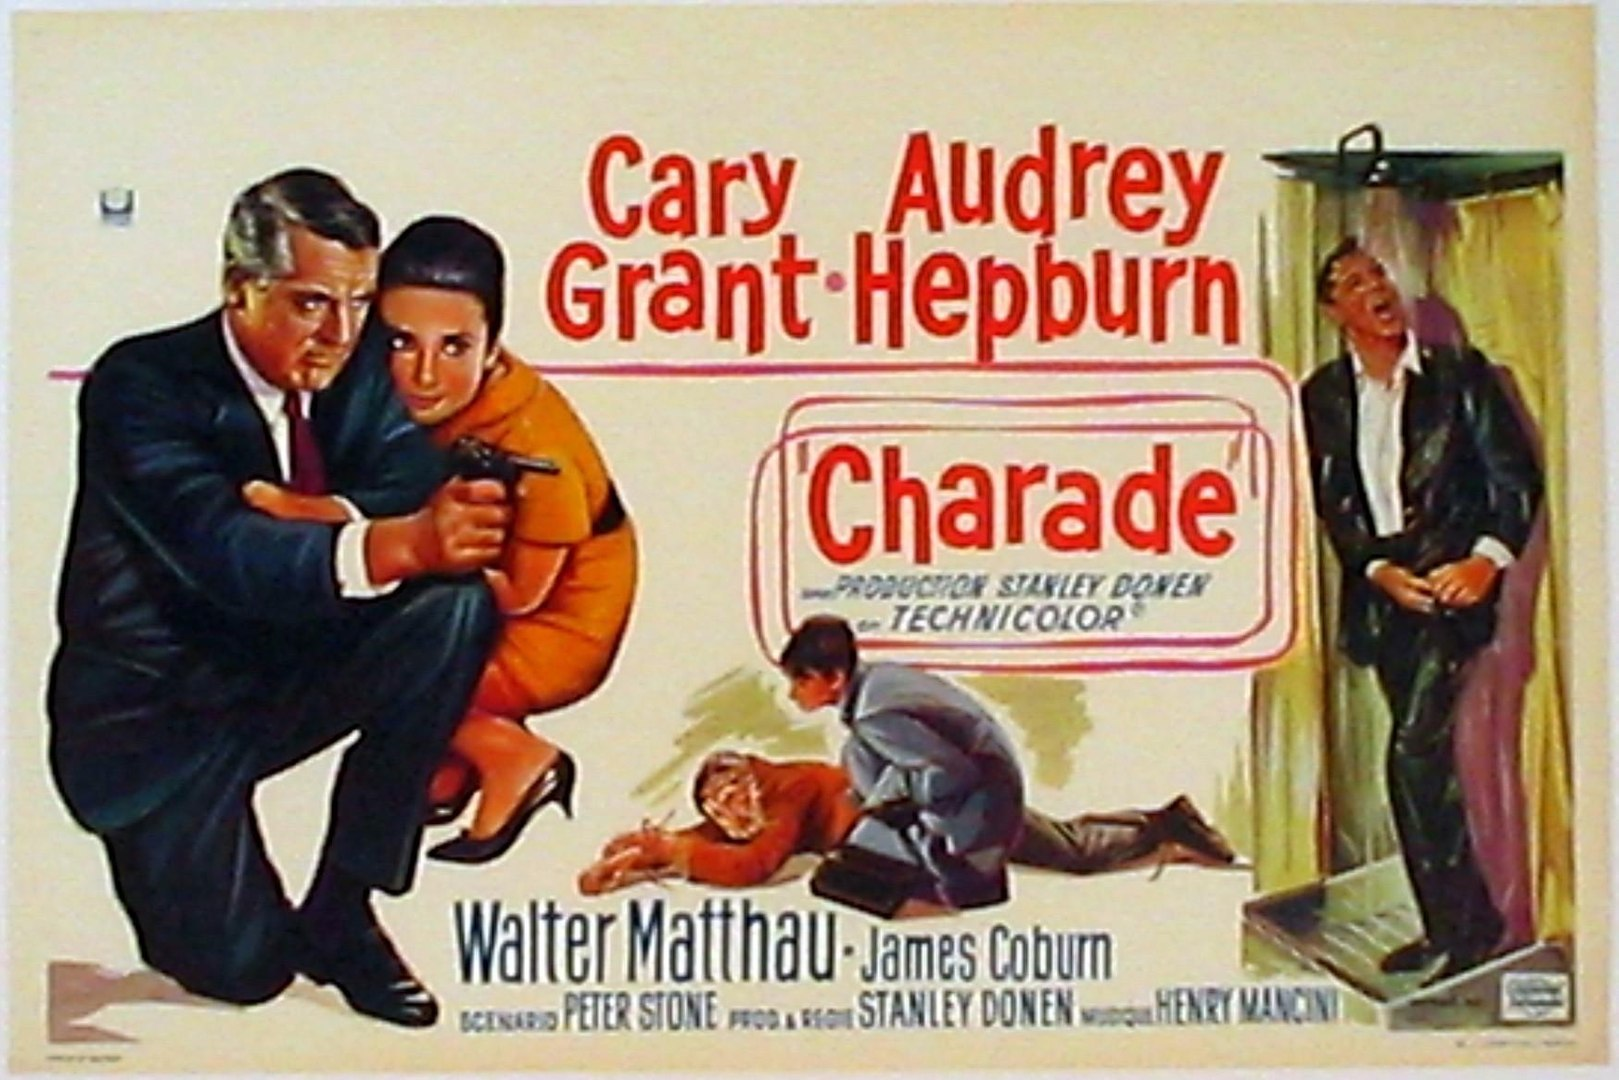 Charade movie (1963) Cary Grant, Audrey Hepburn - video Dailymotion